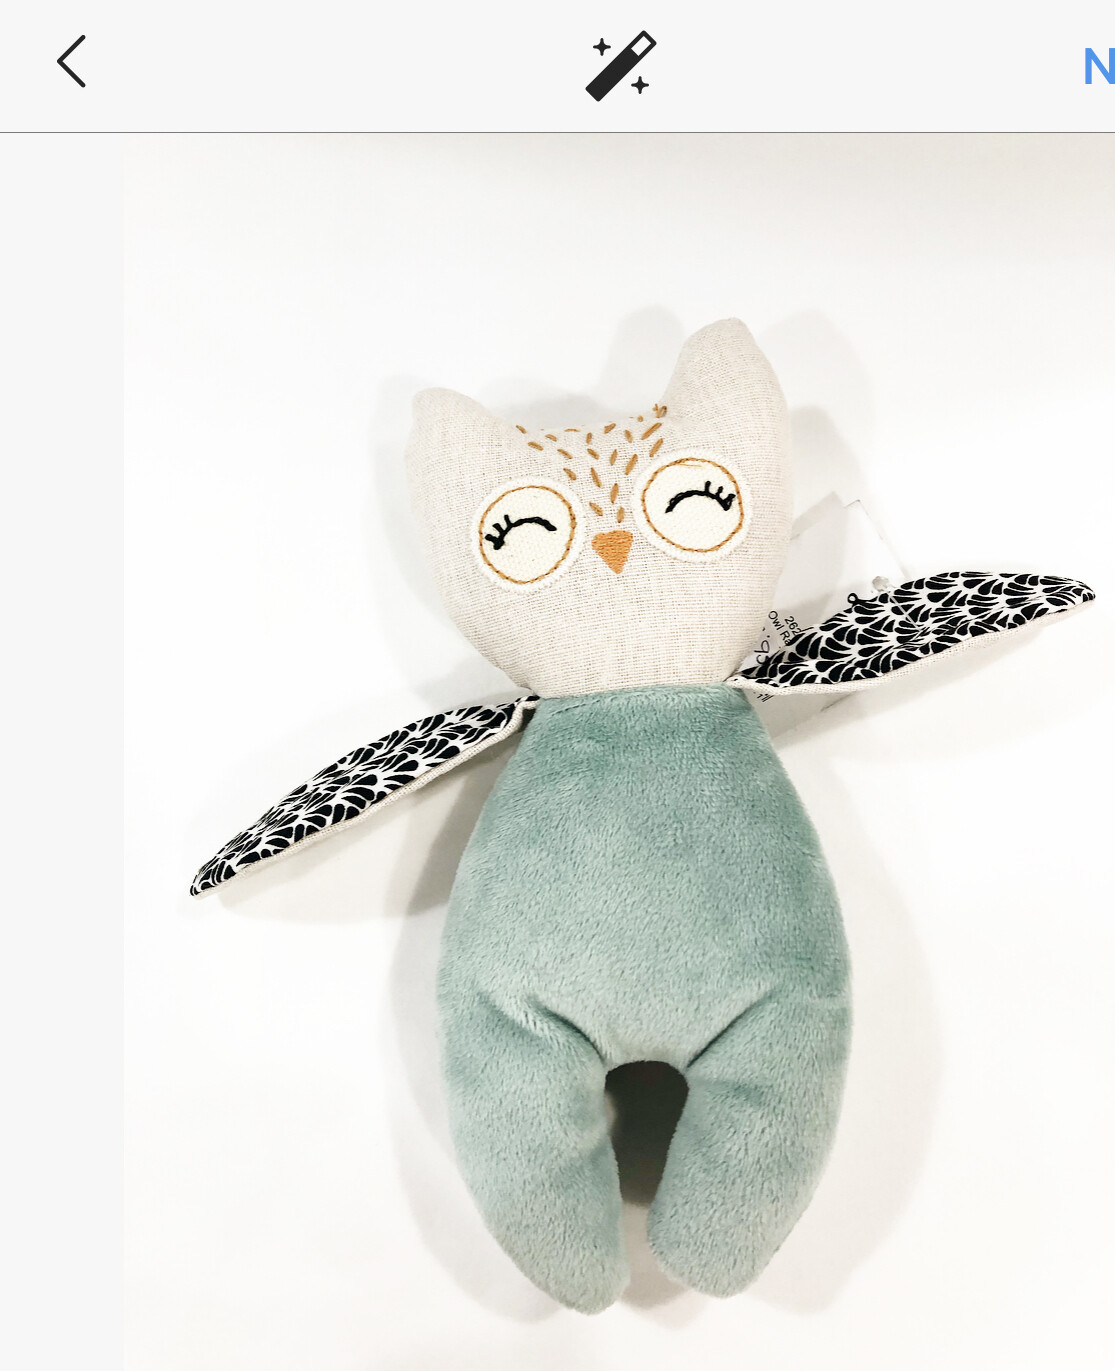 OWL RATTLE TOY by PILBEAM